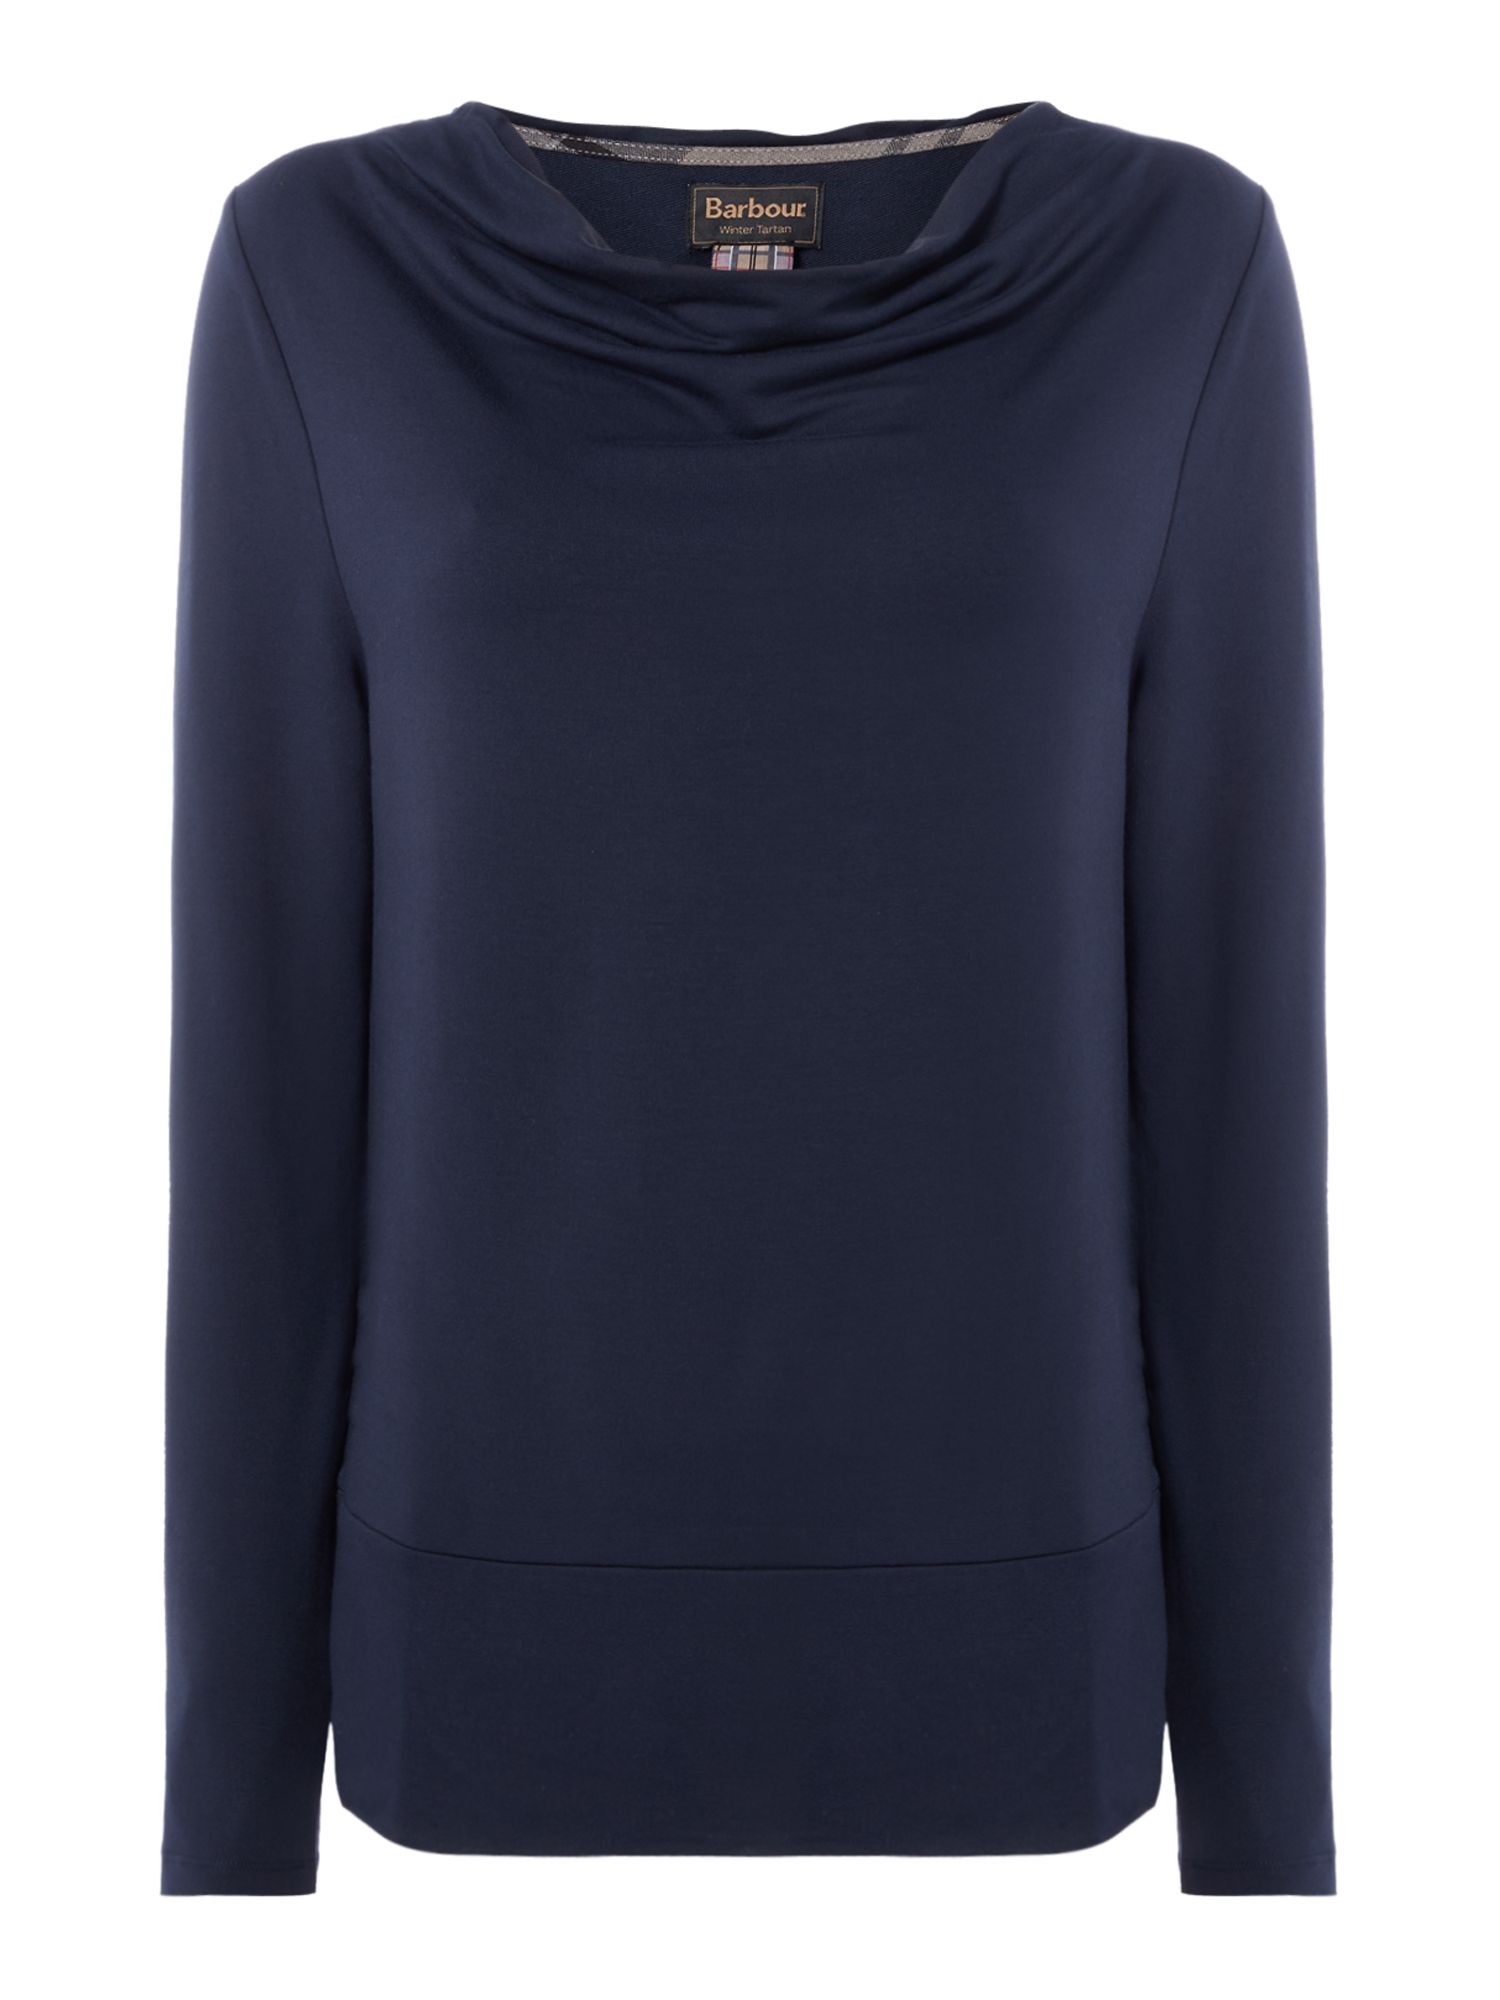 Barbour Cowl Neck Galloway Top With Hem Detail, Blue